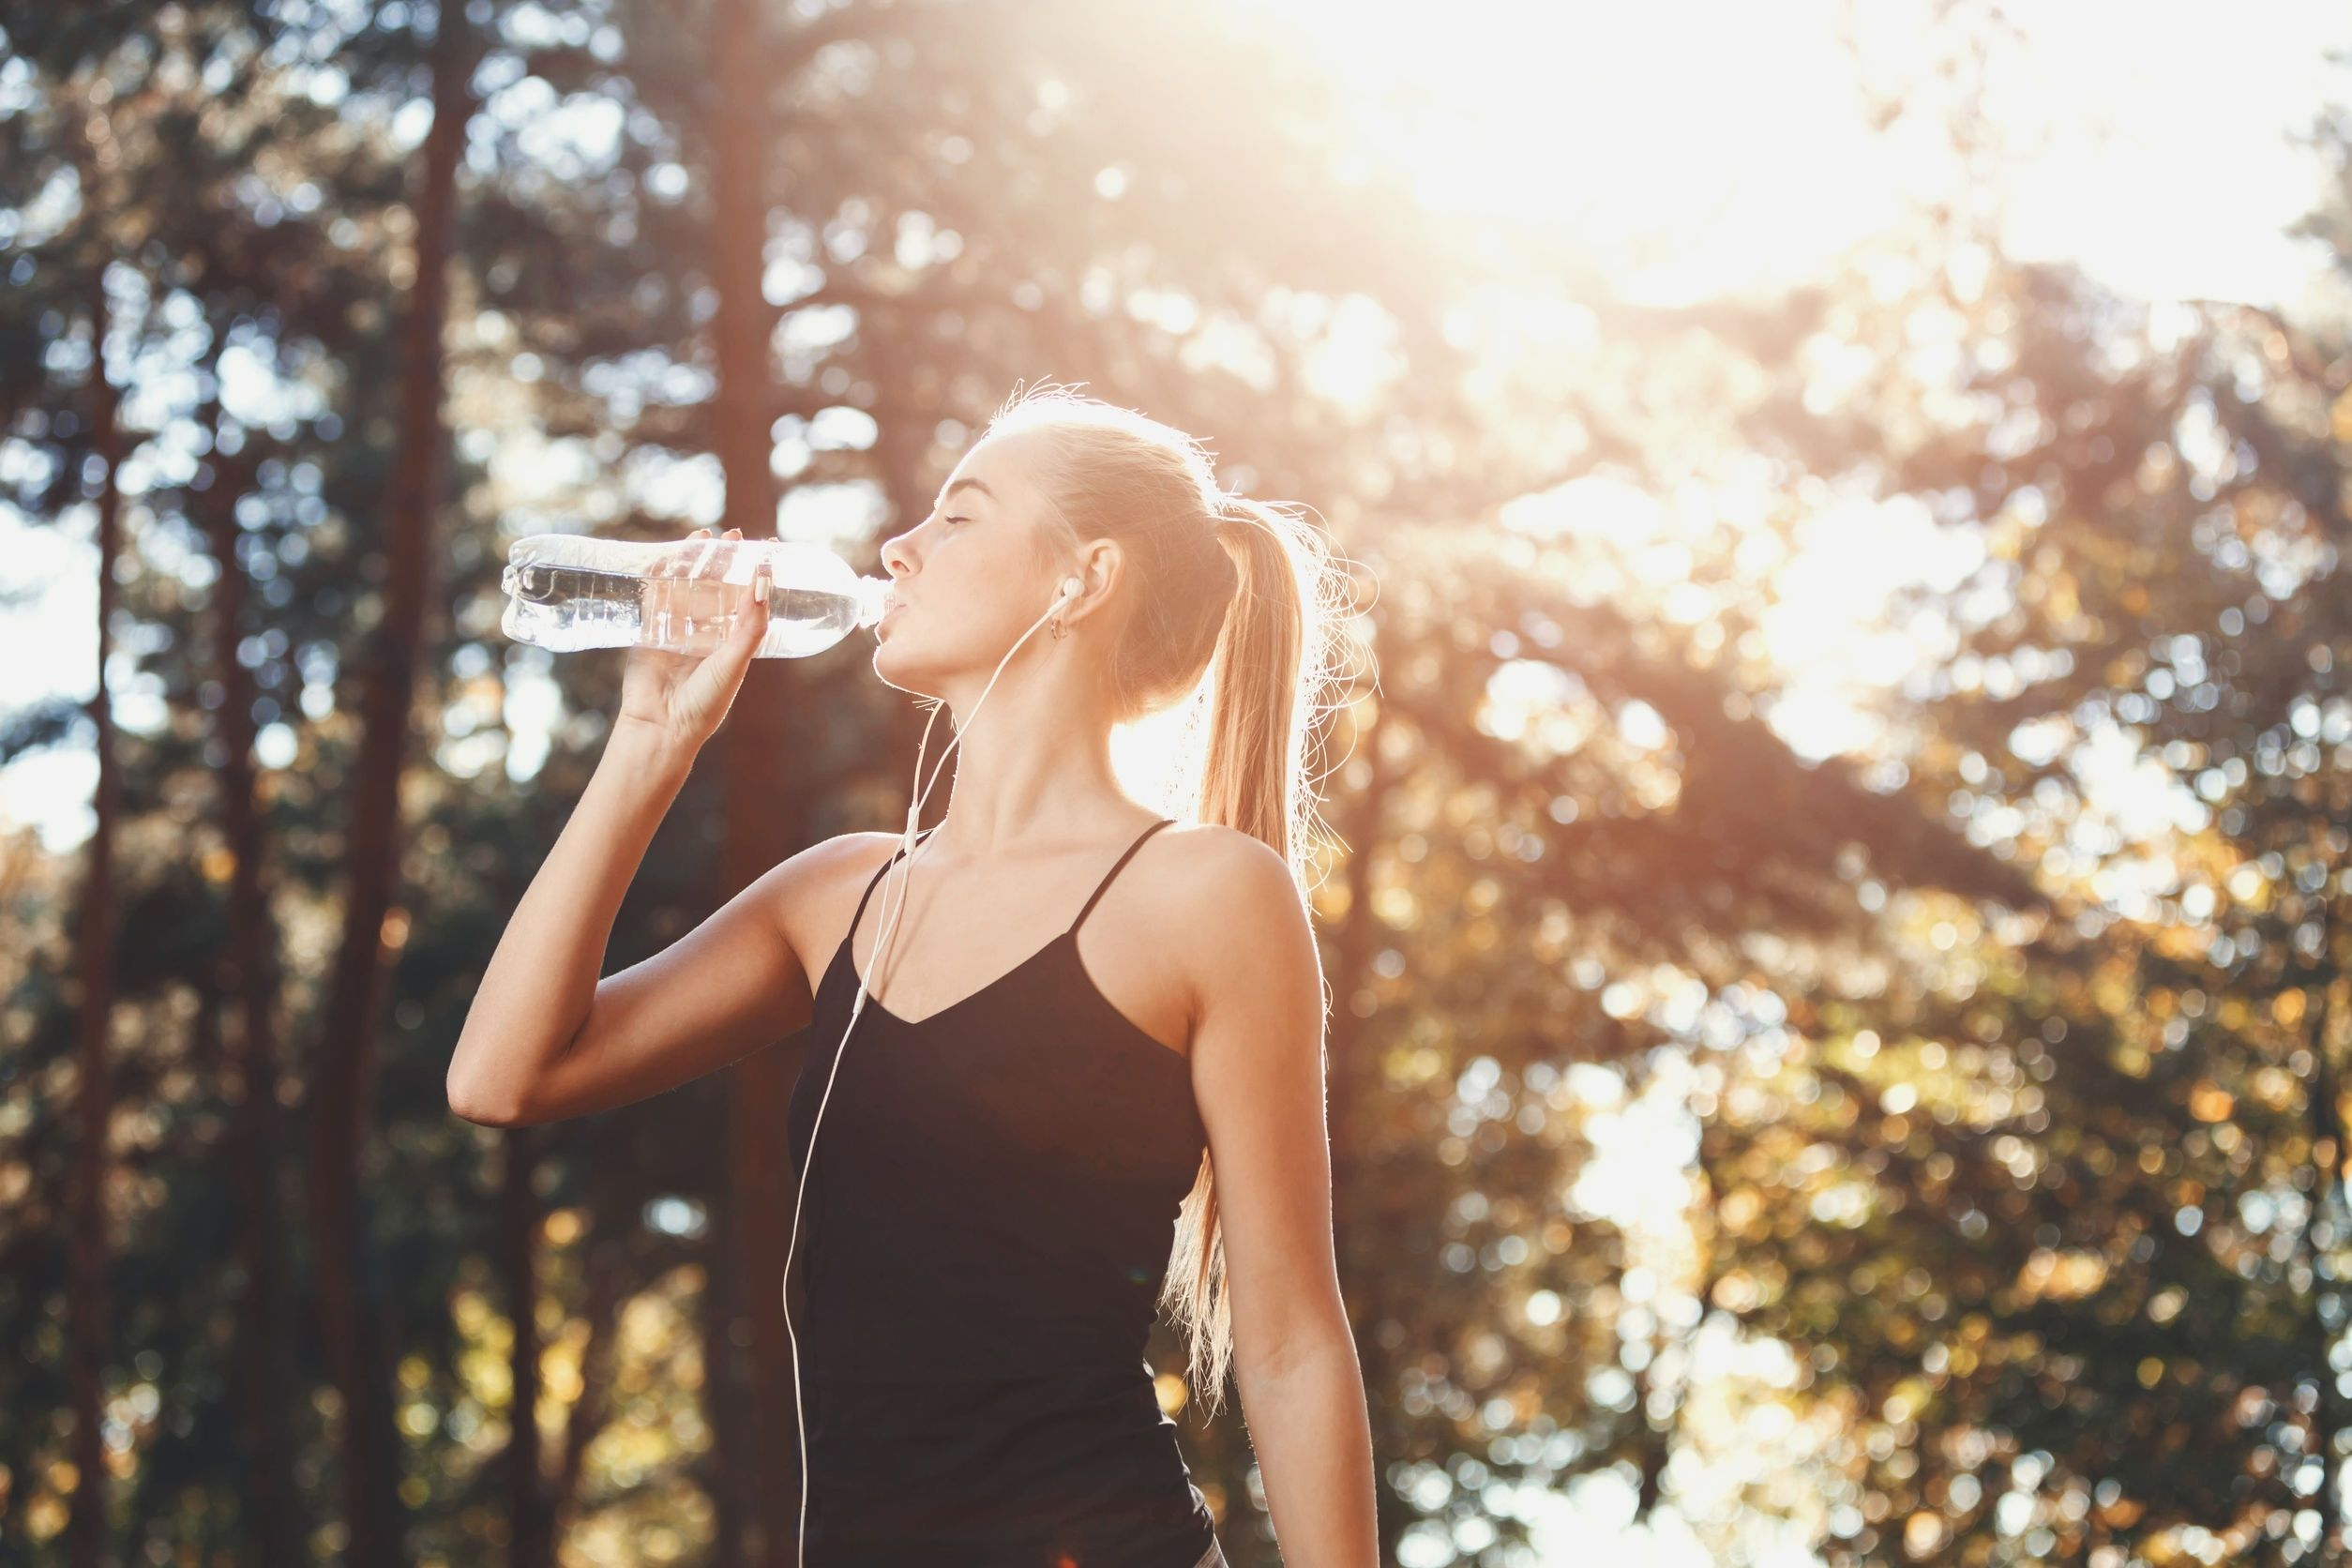 Woman drinking water and listening to music after working out to increase her stamina